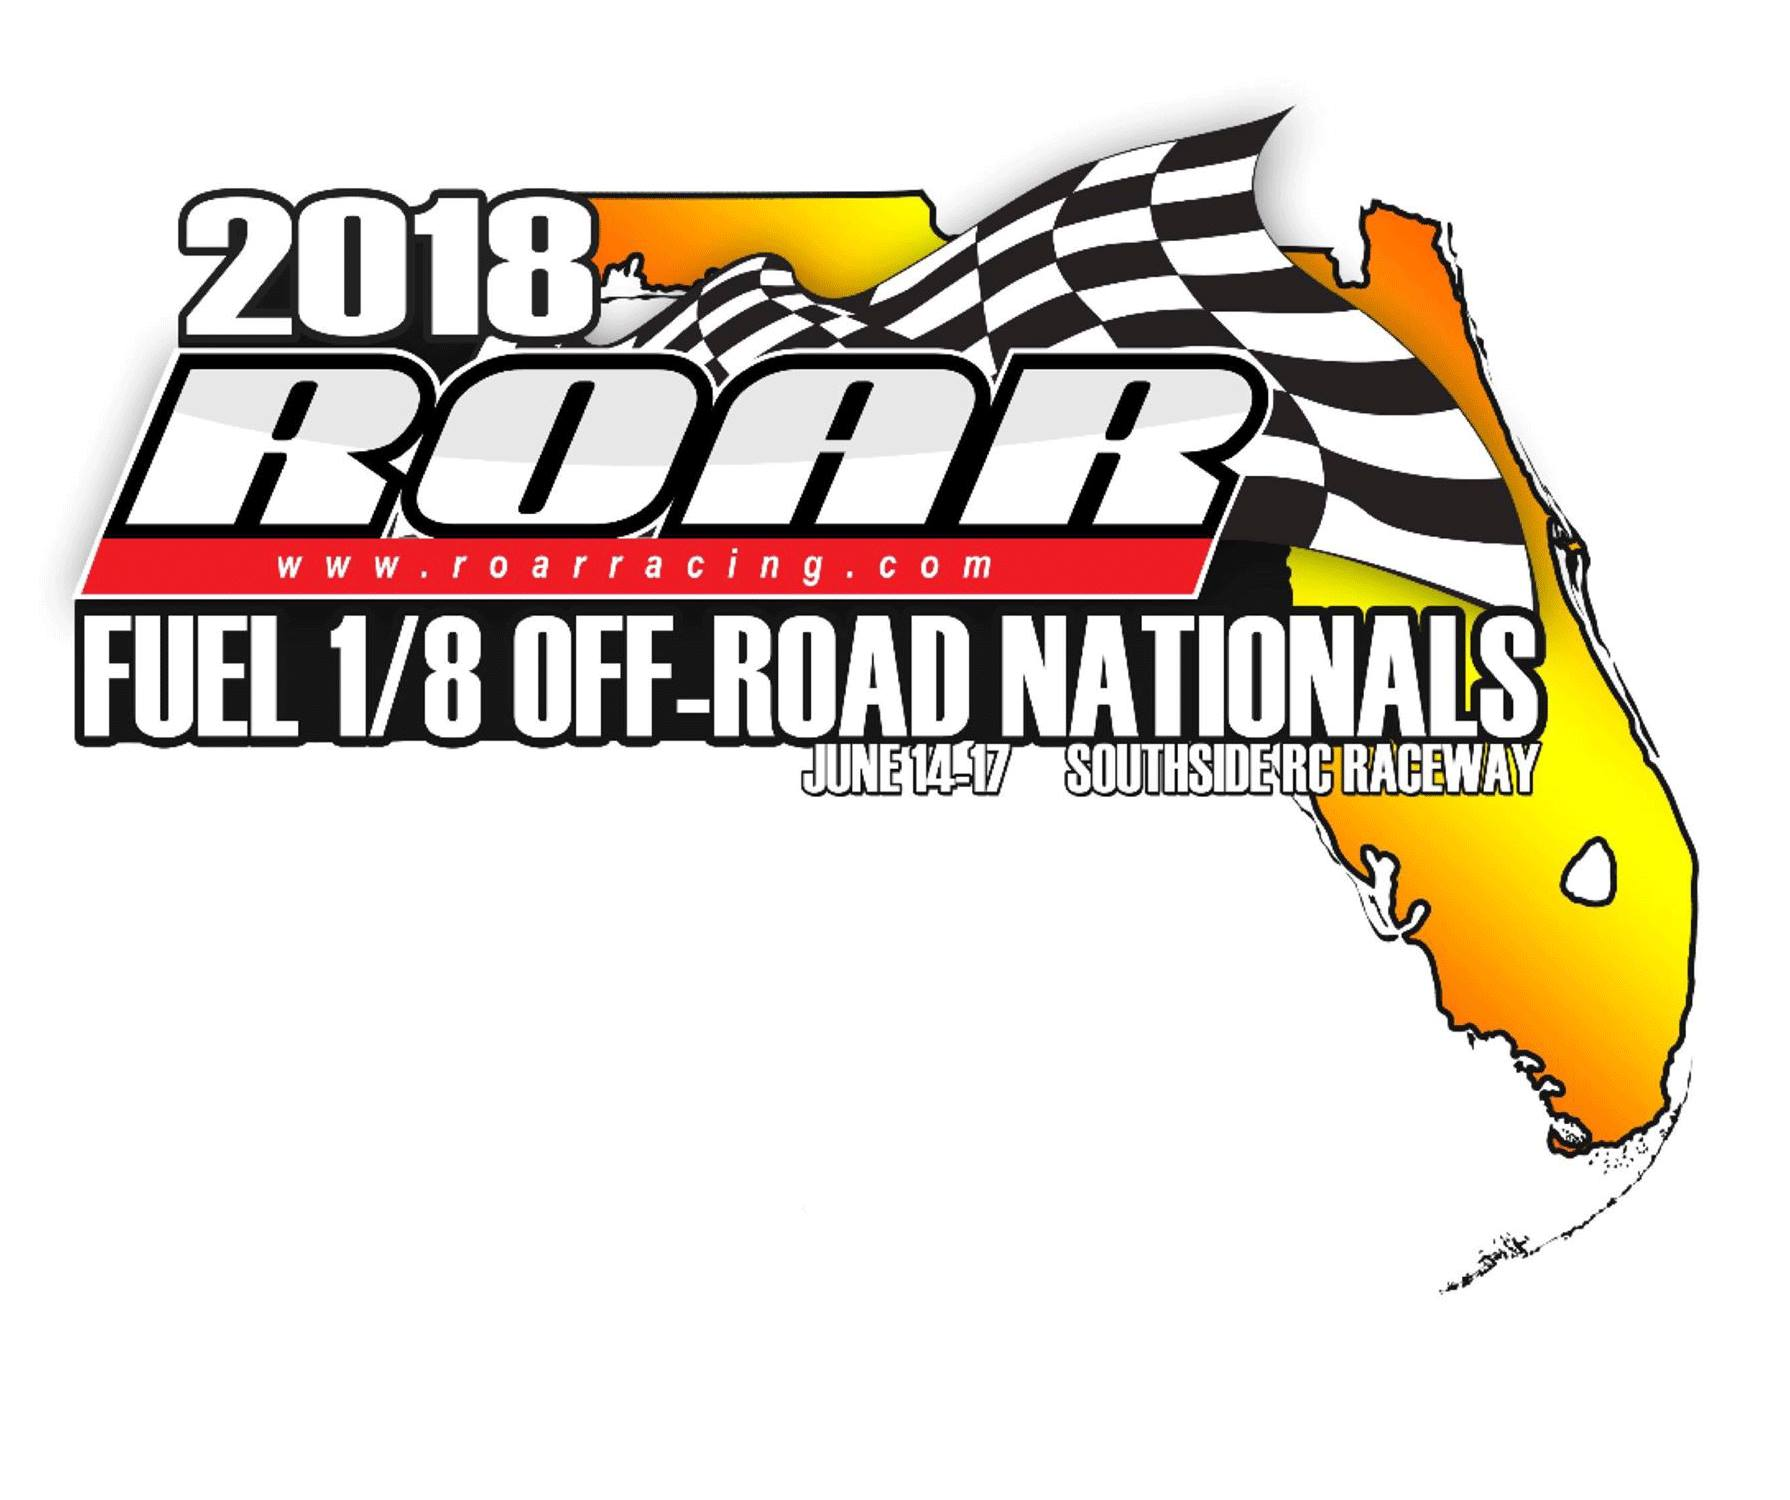 Gateway RC Club - 2018 Roar Nationals